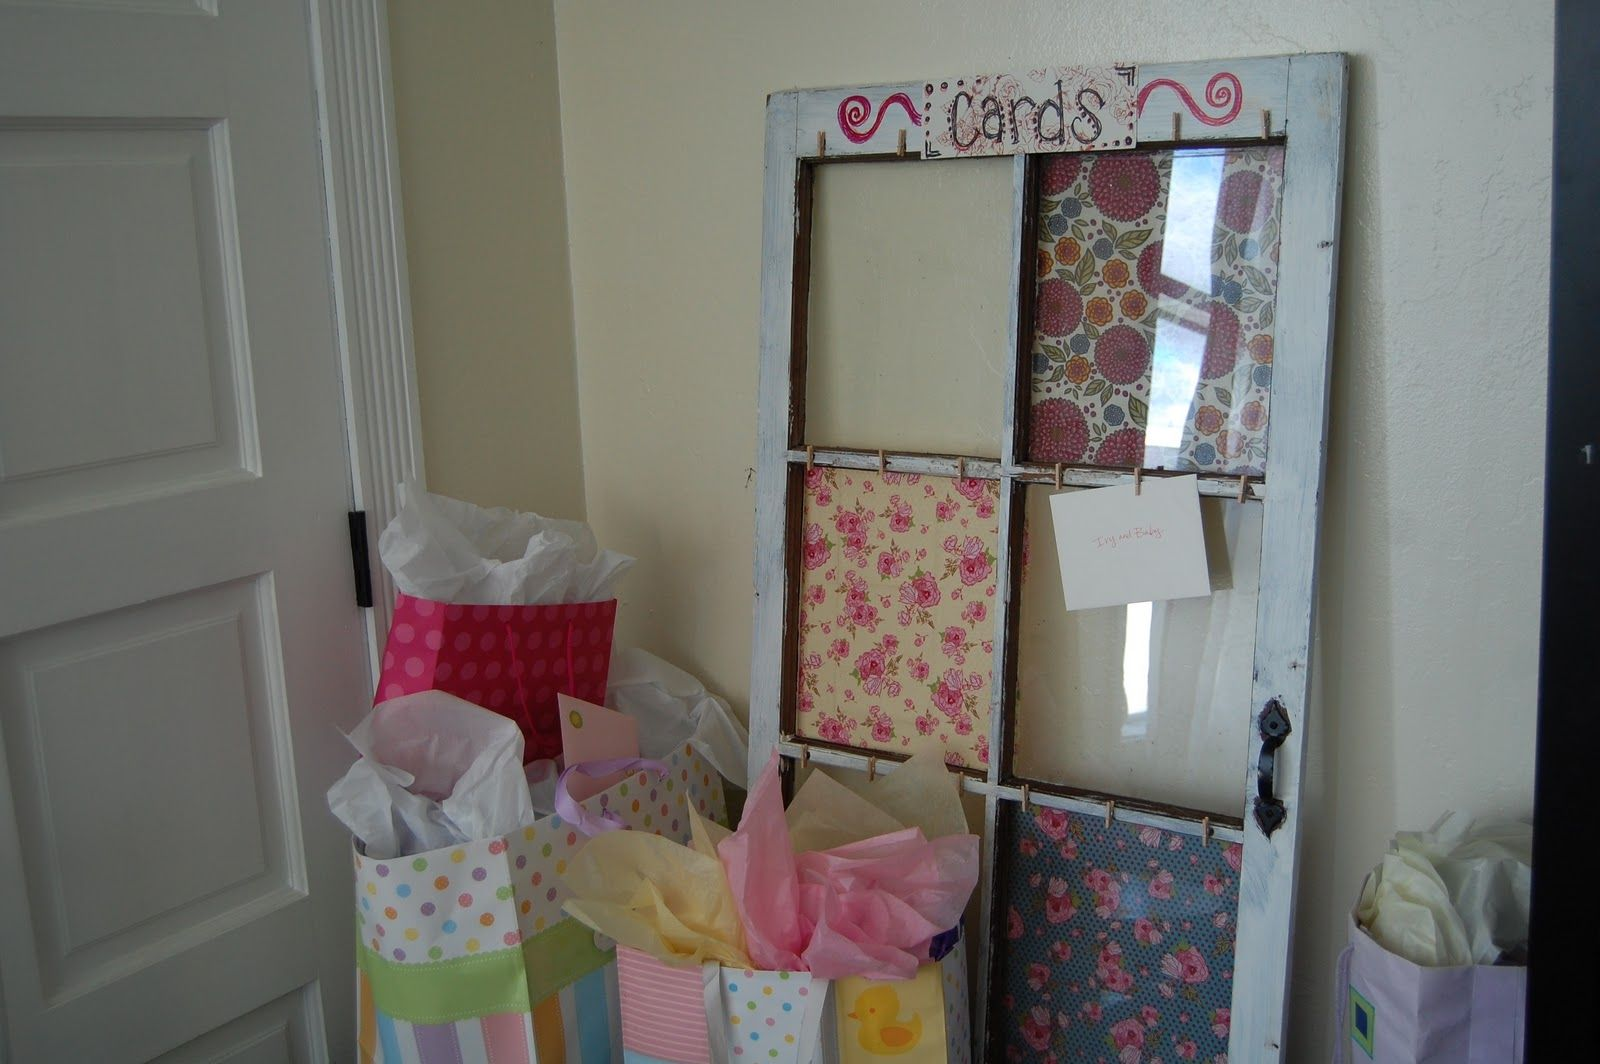 Window cover up ideas  cute idea  safety pins on old window frame to pin up cards  craft